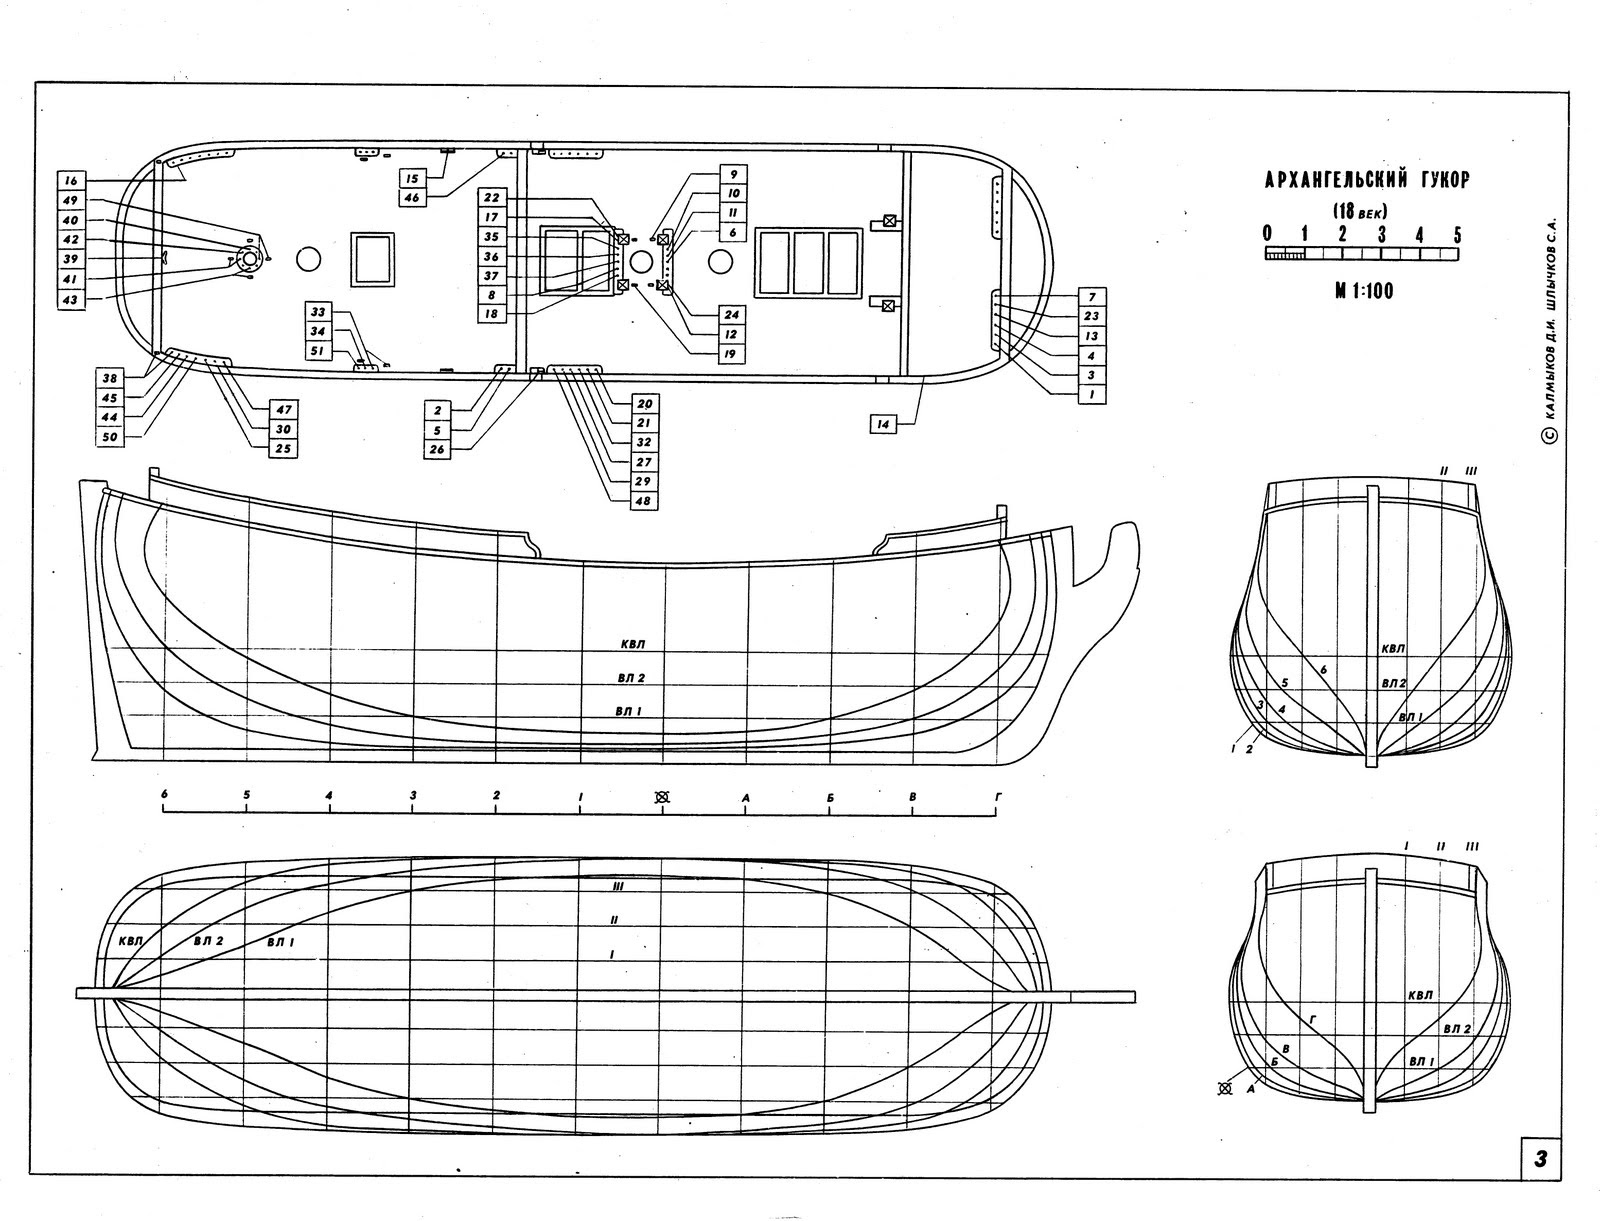 Wooden Model Boats Plans Free